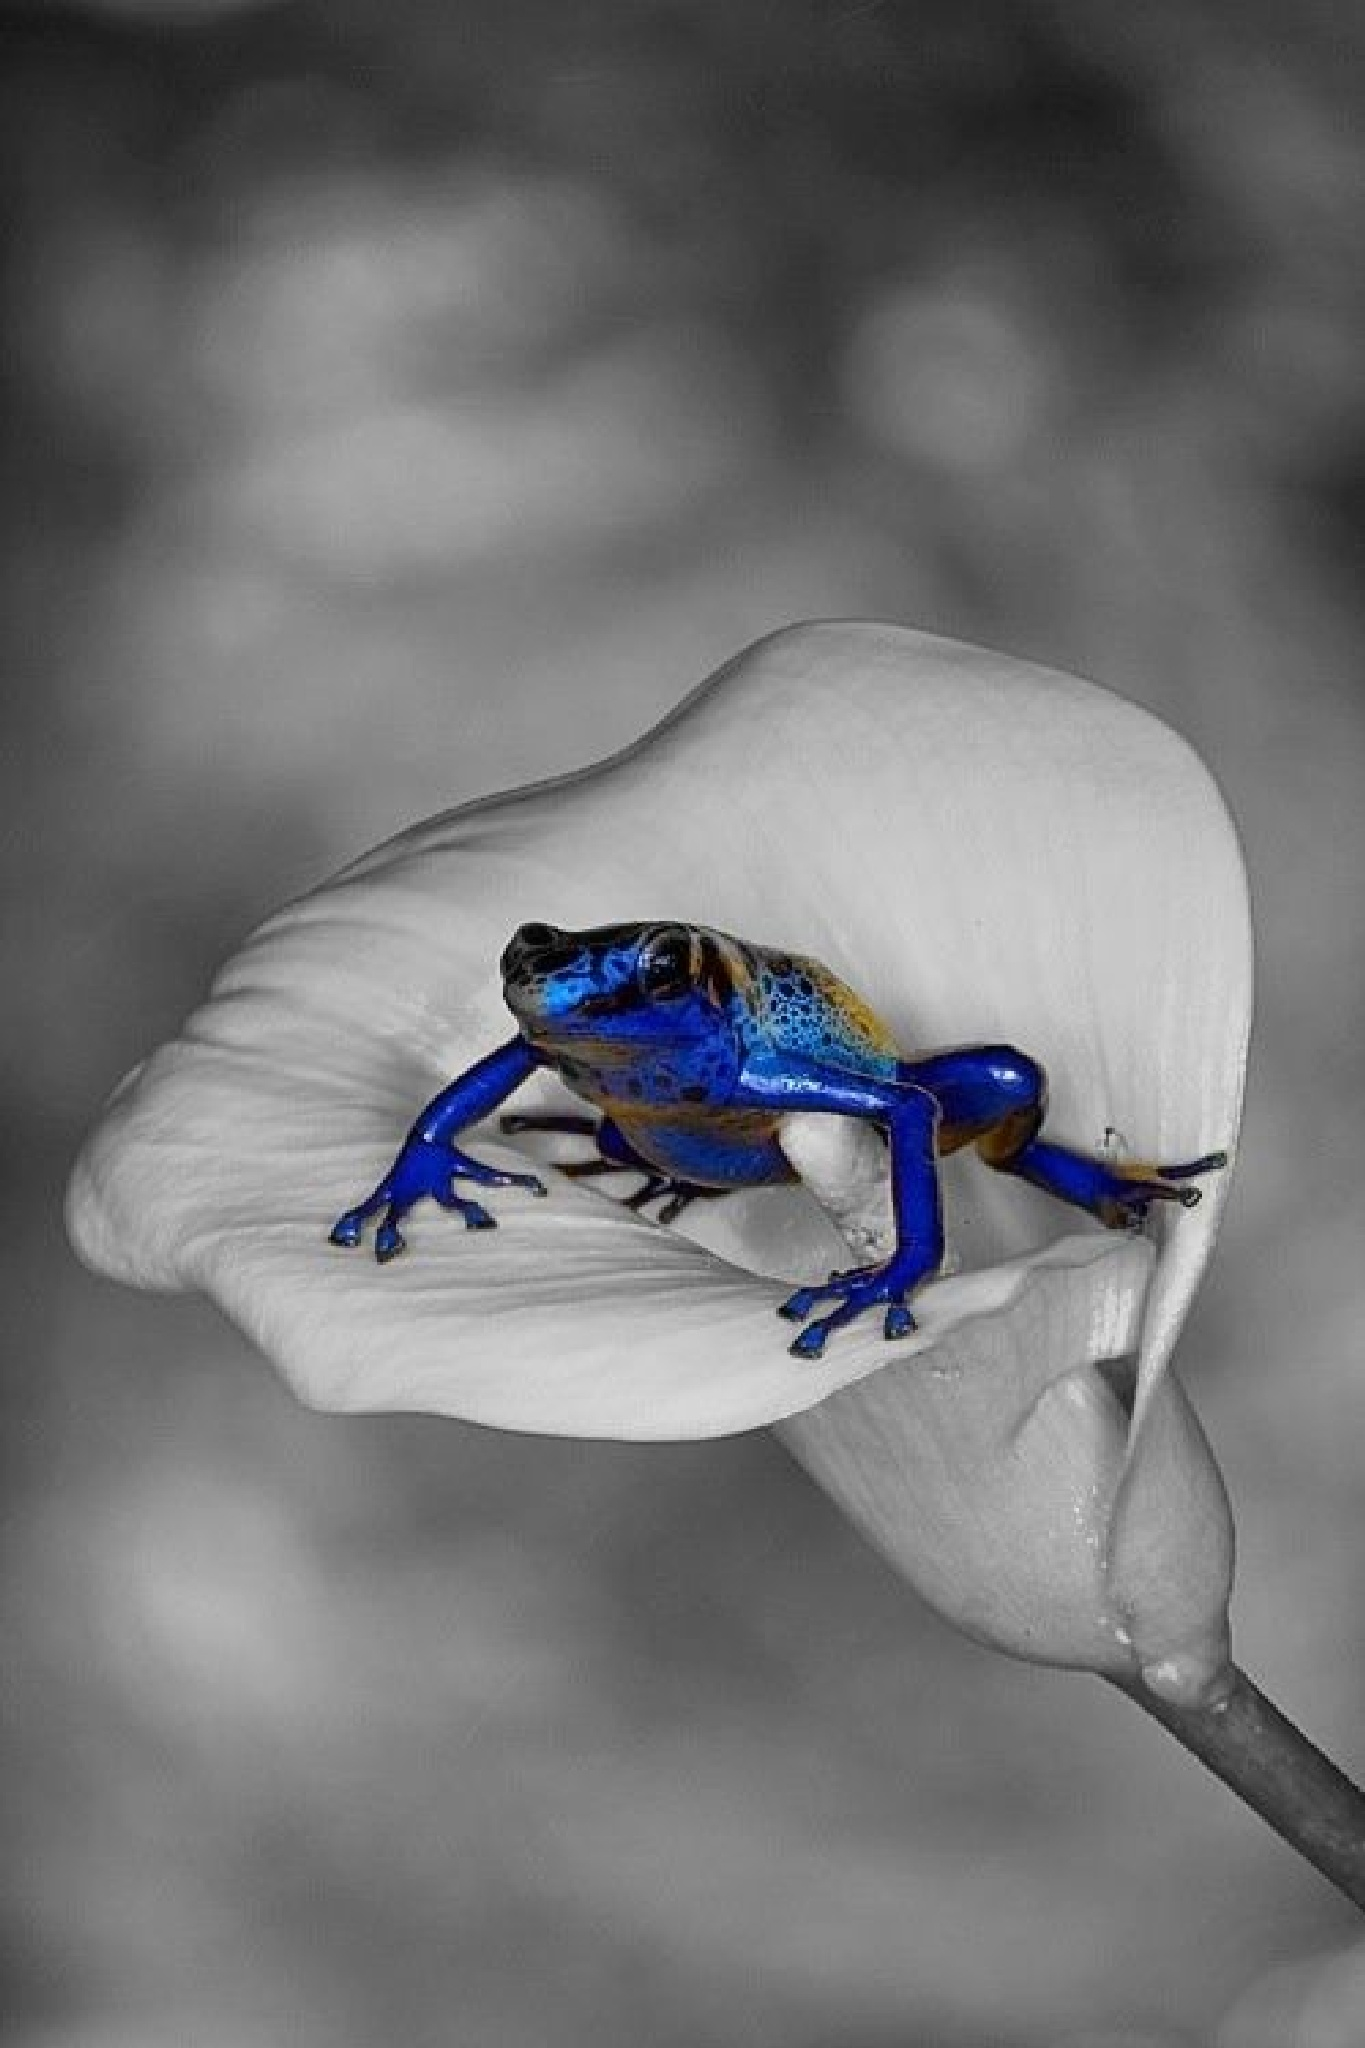 blue frog by Thierry_Philip